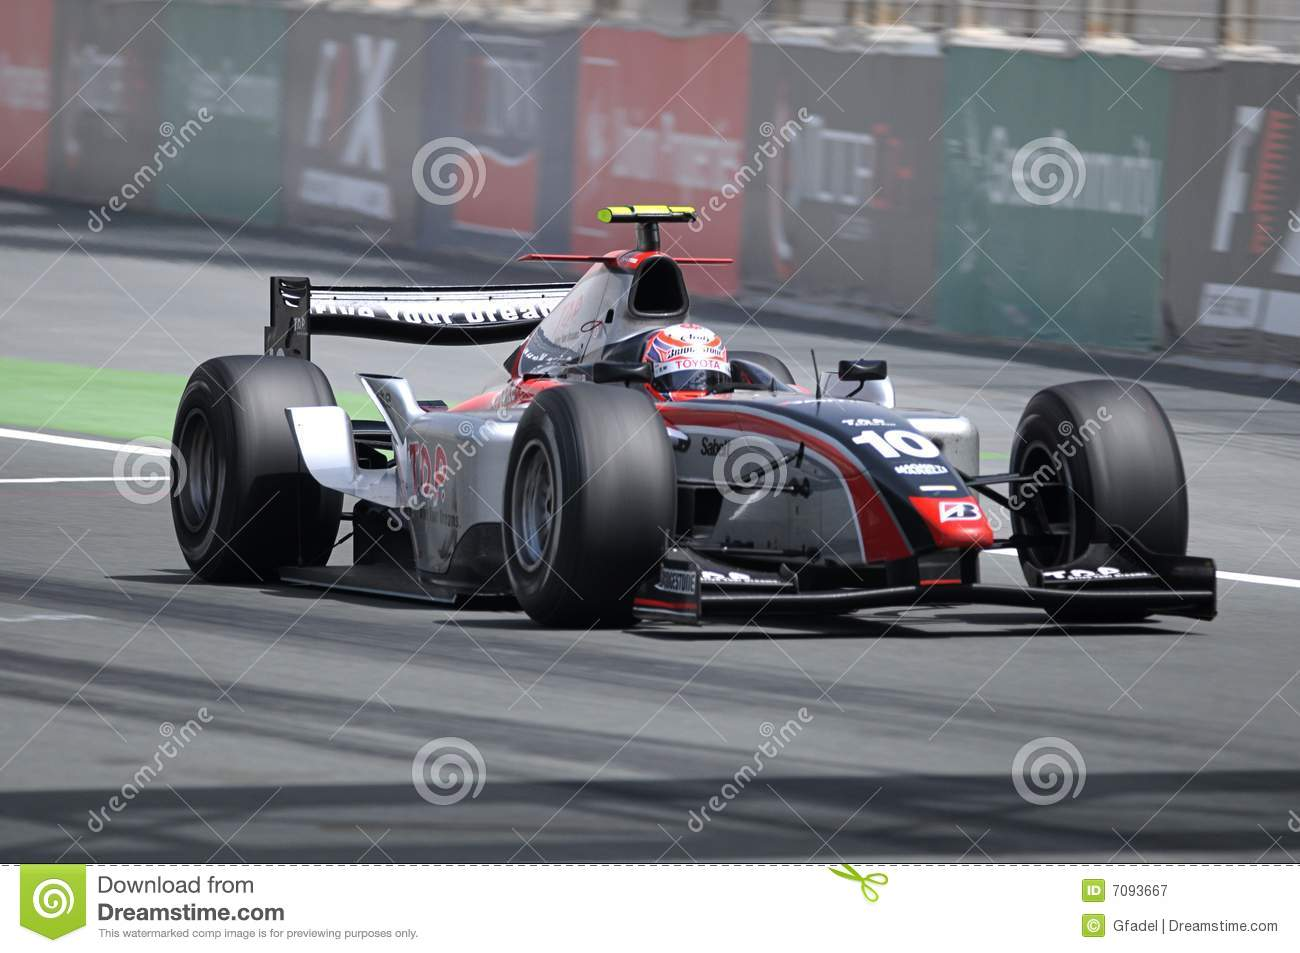 GP2 Asie 2008 5 ronds - Dubaï